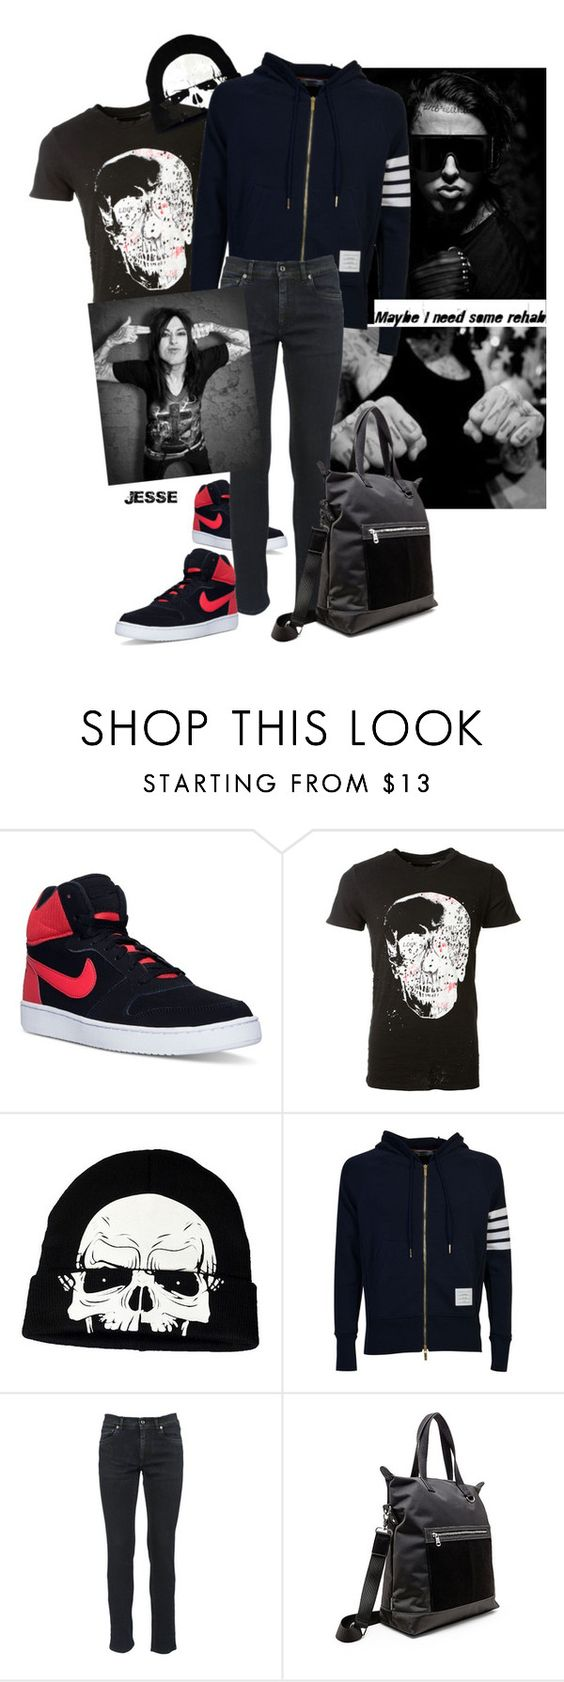 """Reality Rehab"" by archfiend ❤ liked on Polyvore featuring NIKE, AMIRI, Concept One, Thom Browne, Dolce&Gabbana, Steve Madden, men's fashion and menswear"